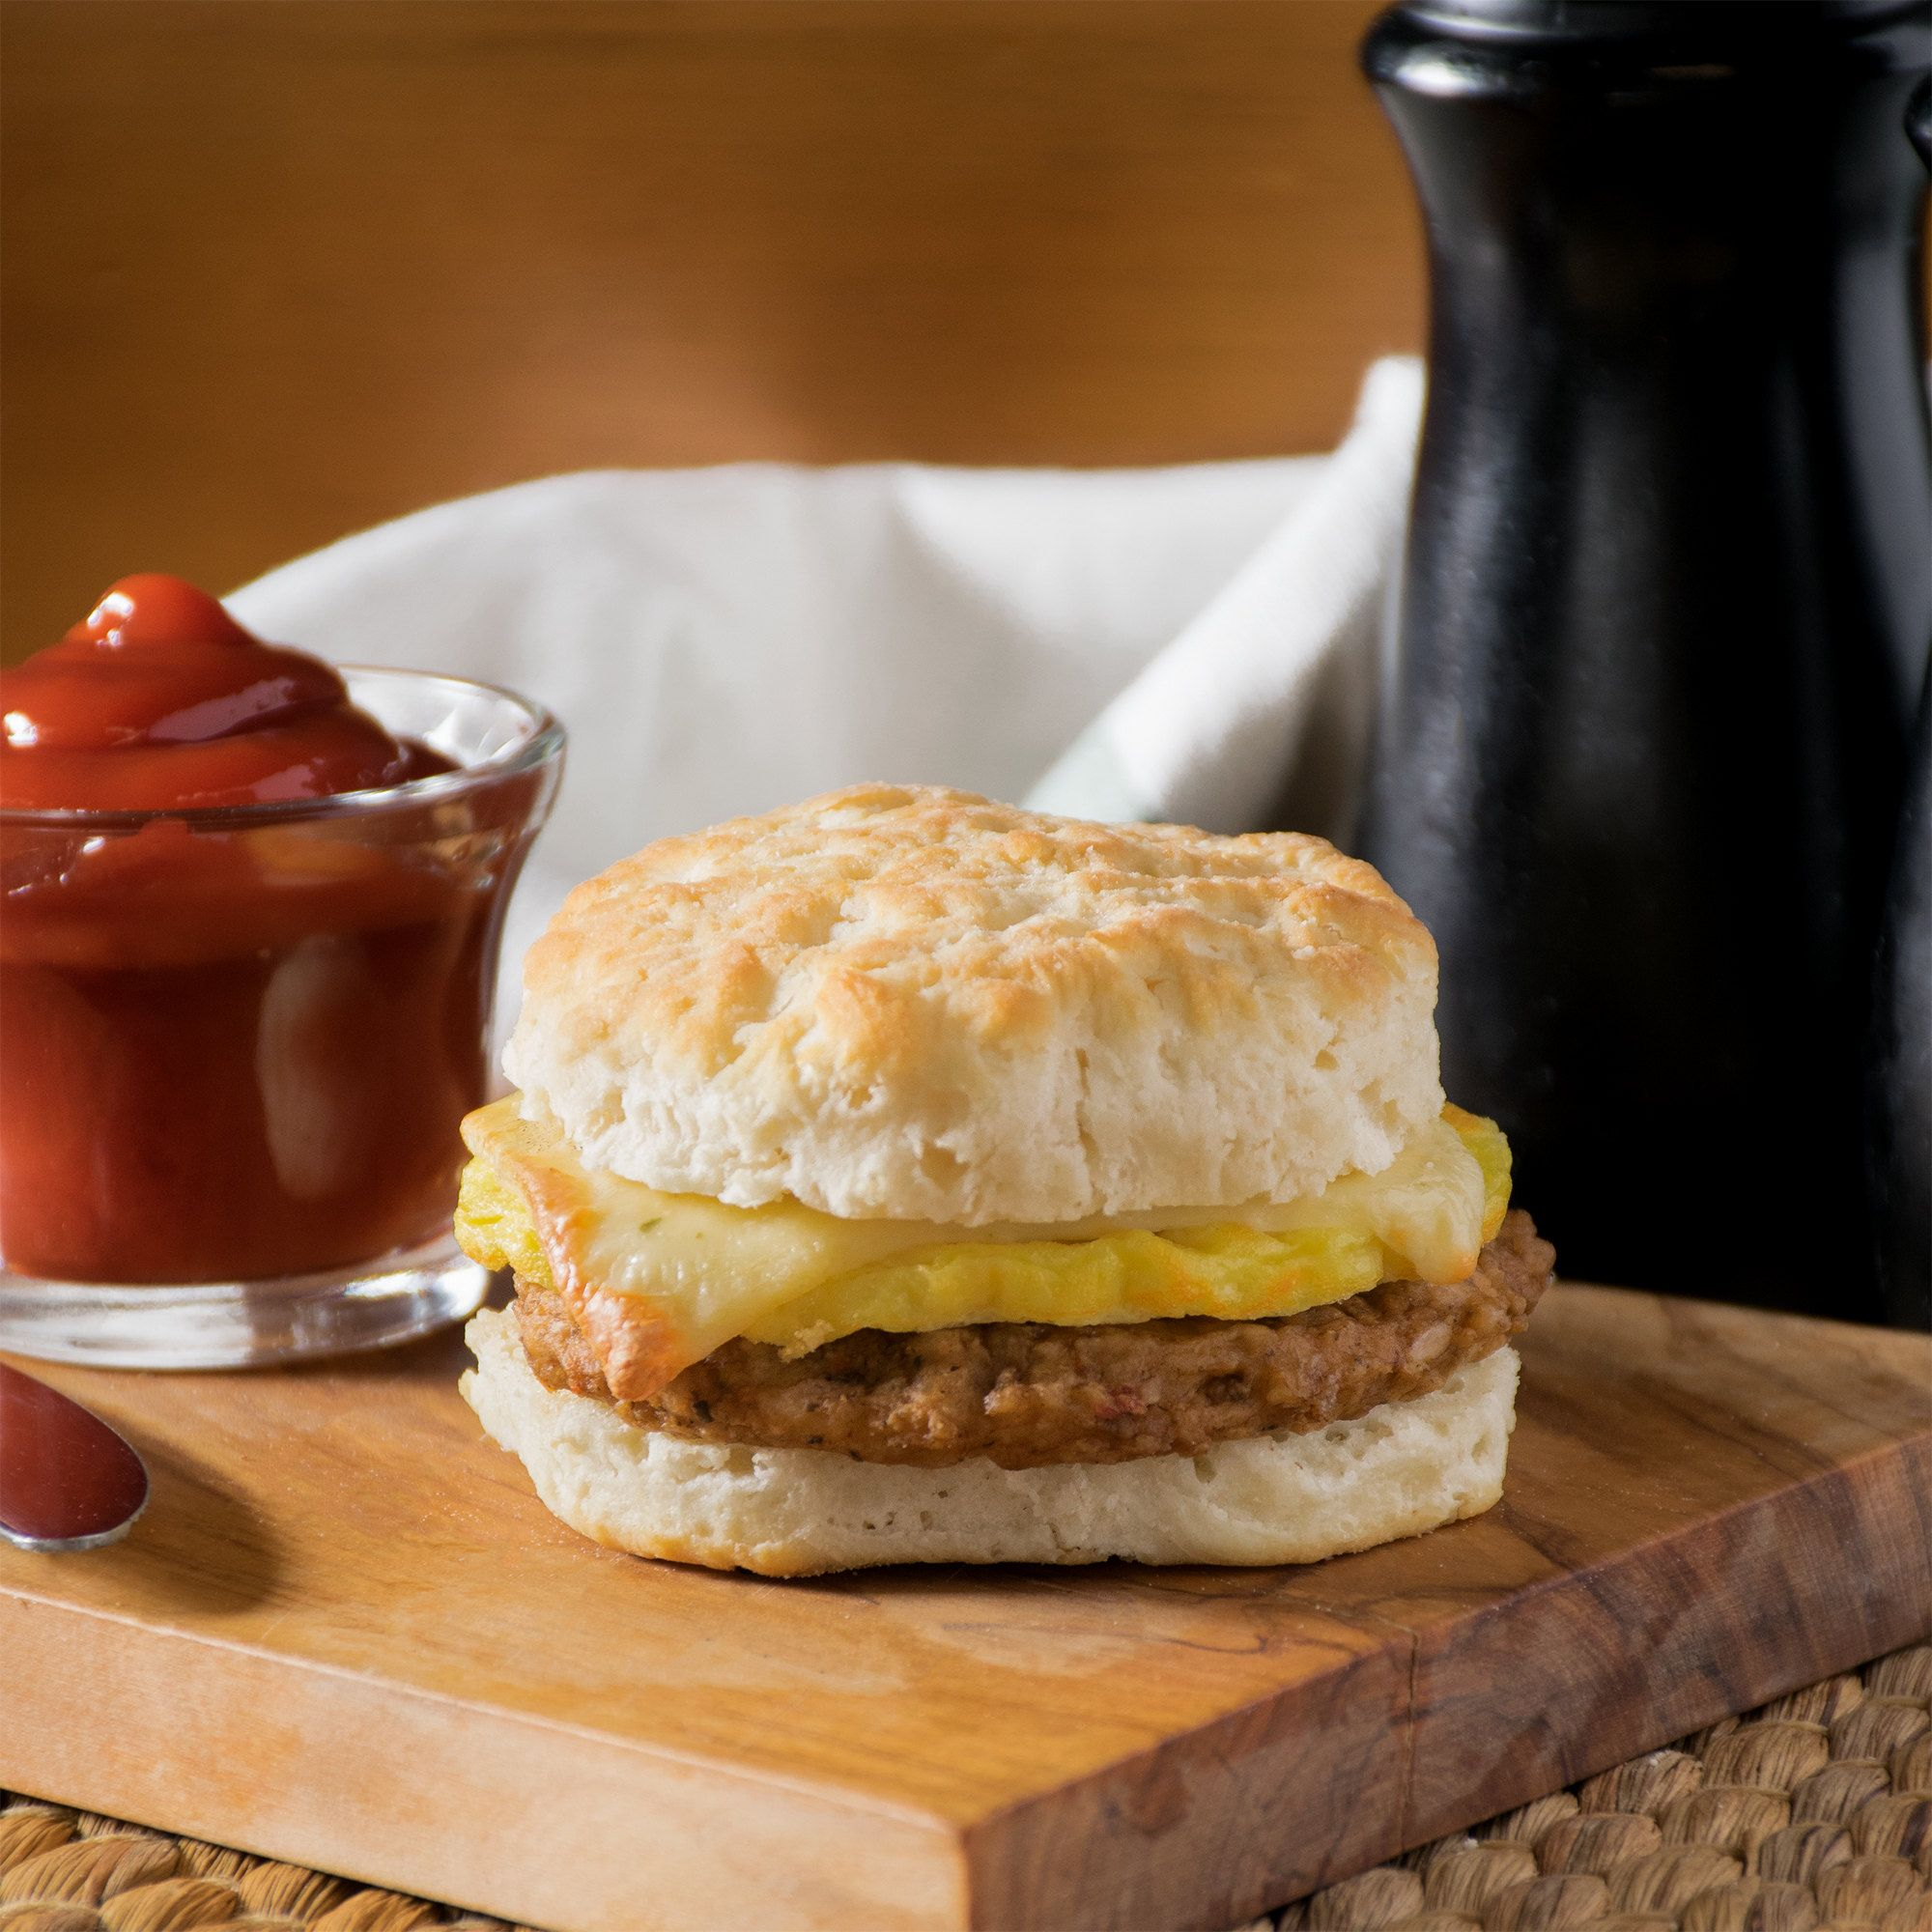 how do you cook jimmy dean breakfast sandwiches